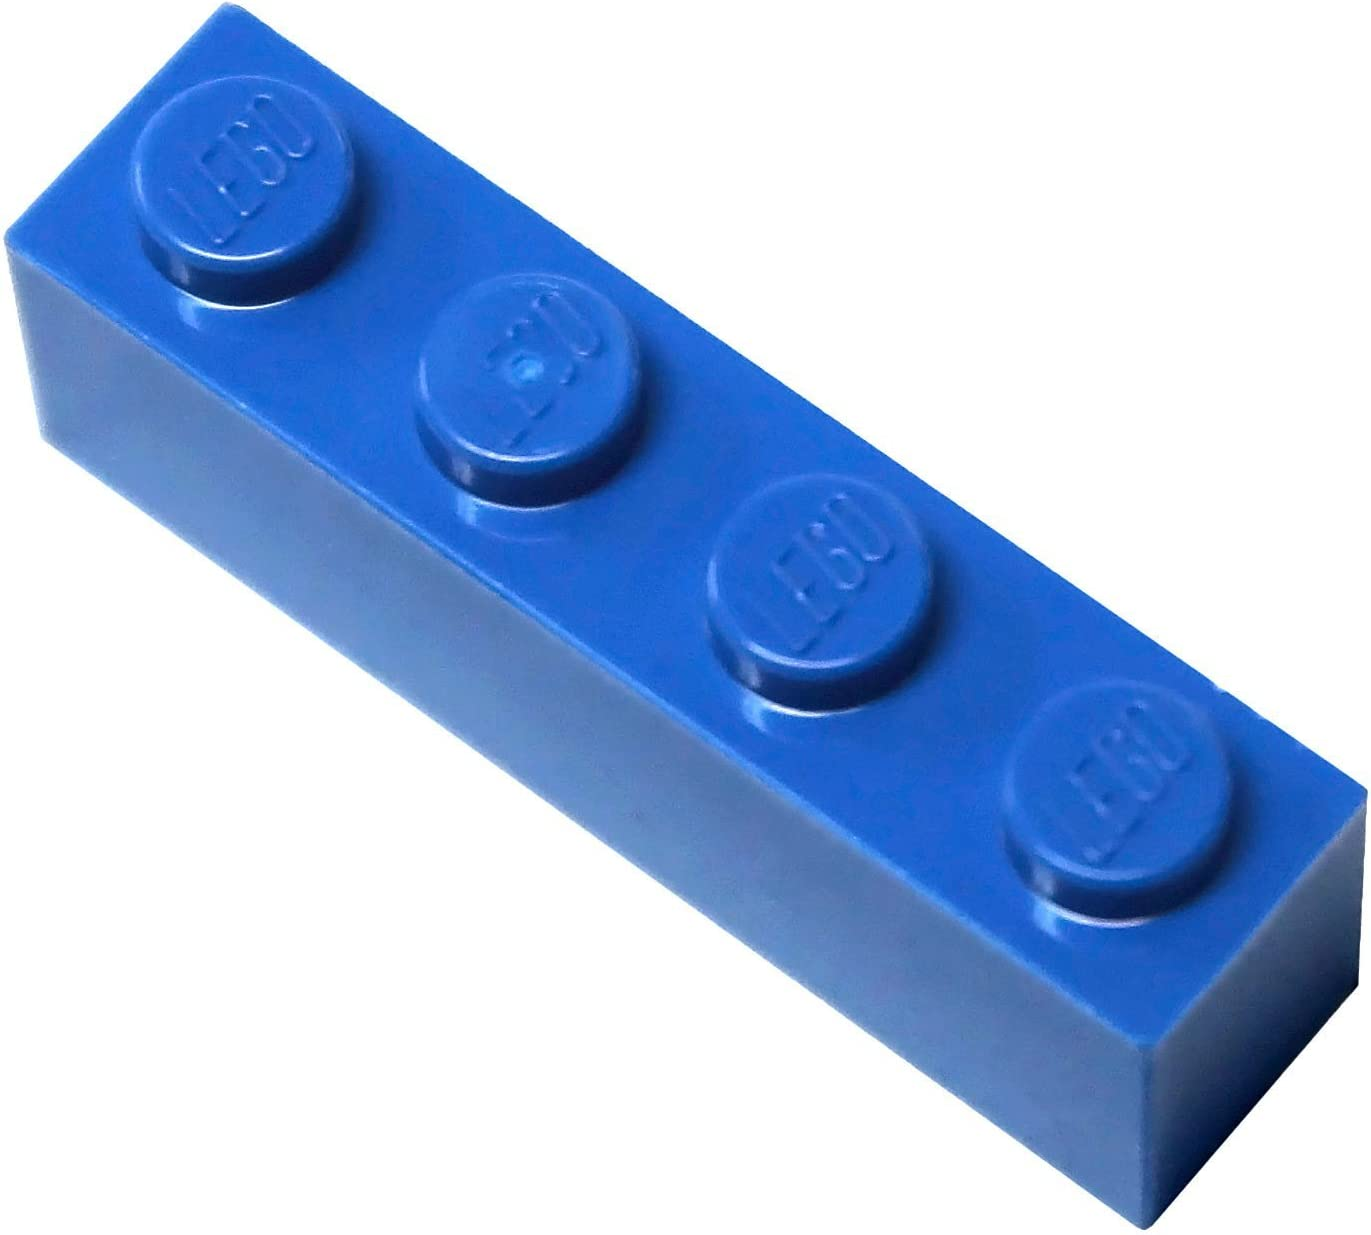 LEGO Parts and Pieces: Blue (Bright Blue) 1x4 Brick x20